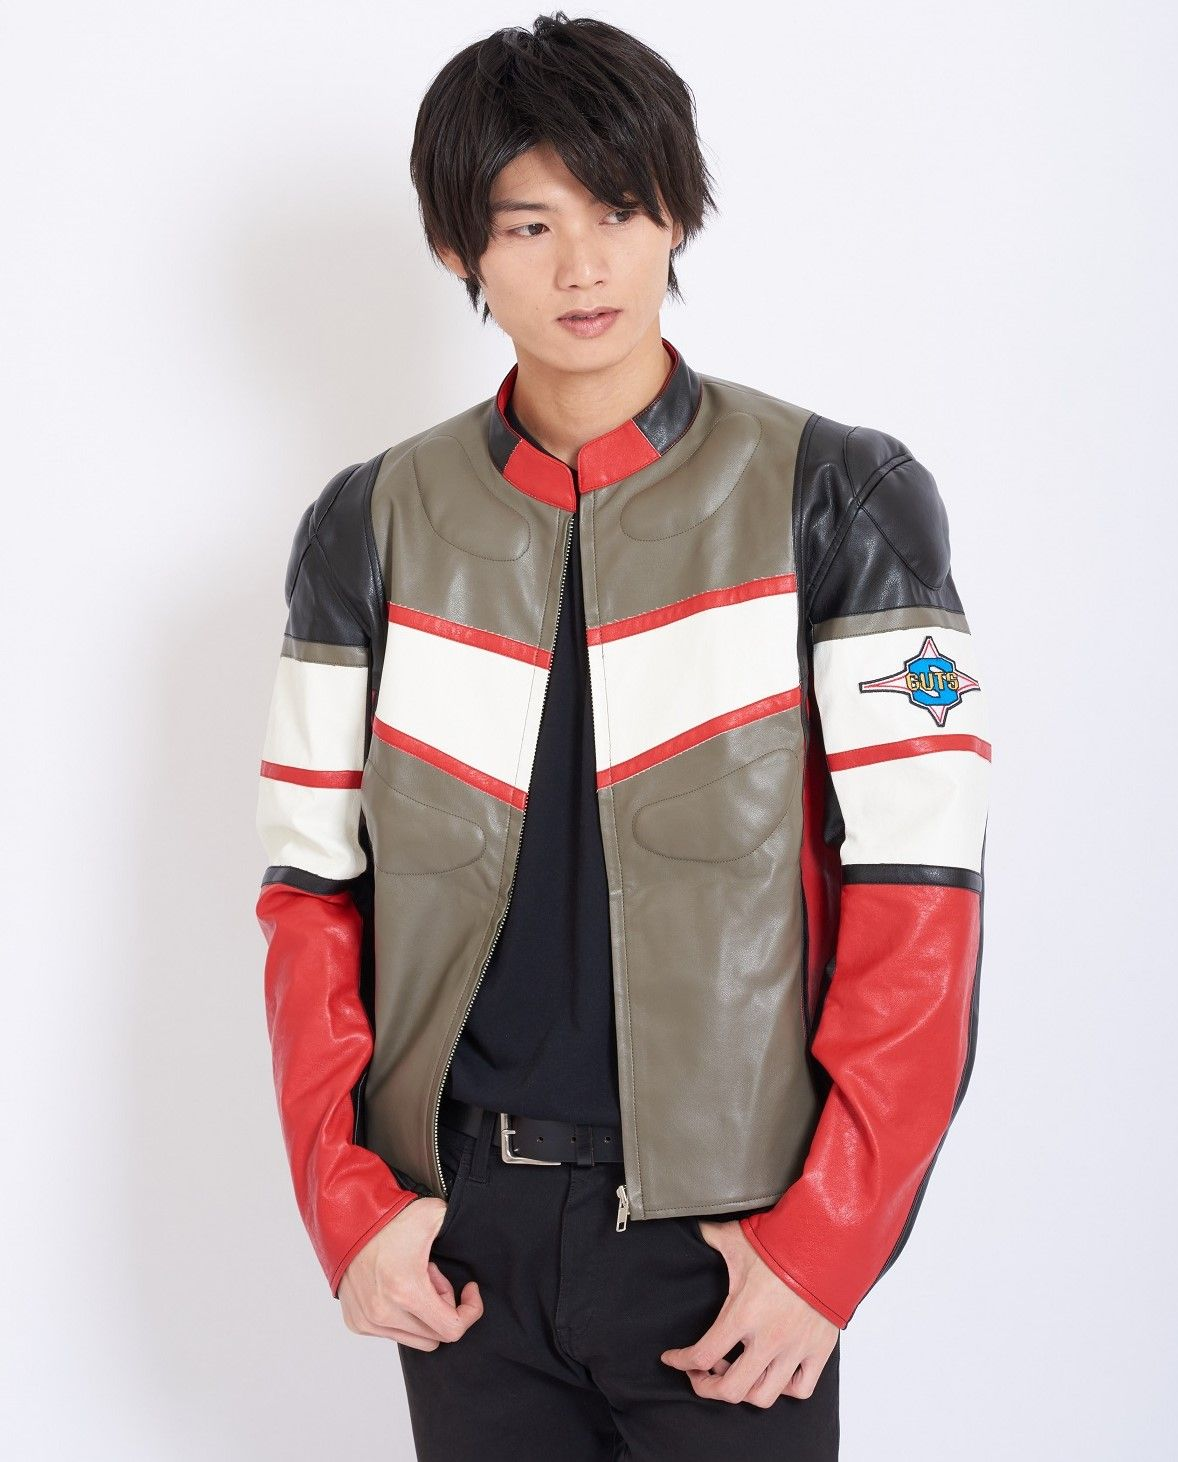 Ultraman Dyna Super GUTS Uniform Jacket